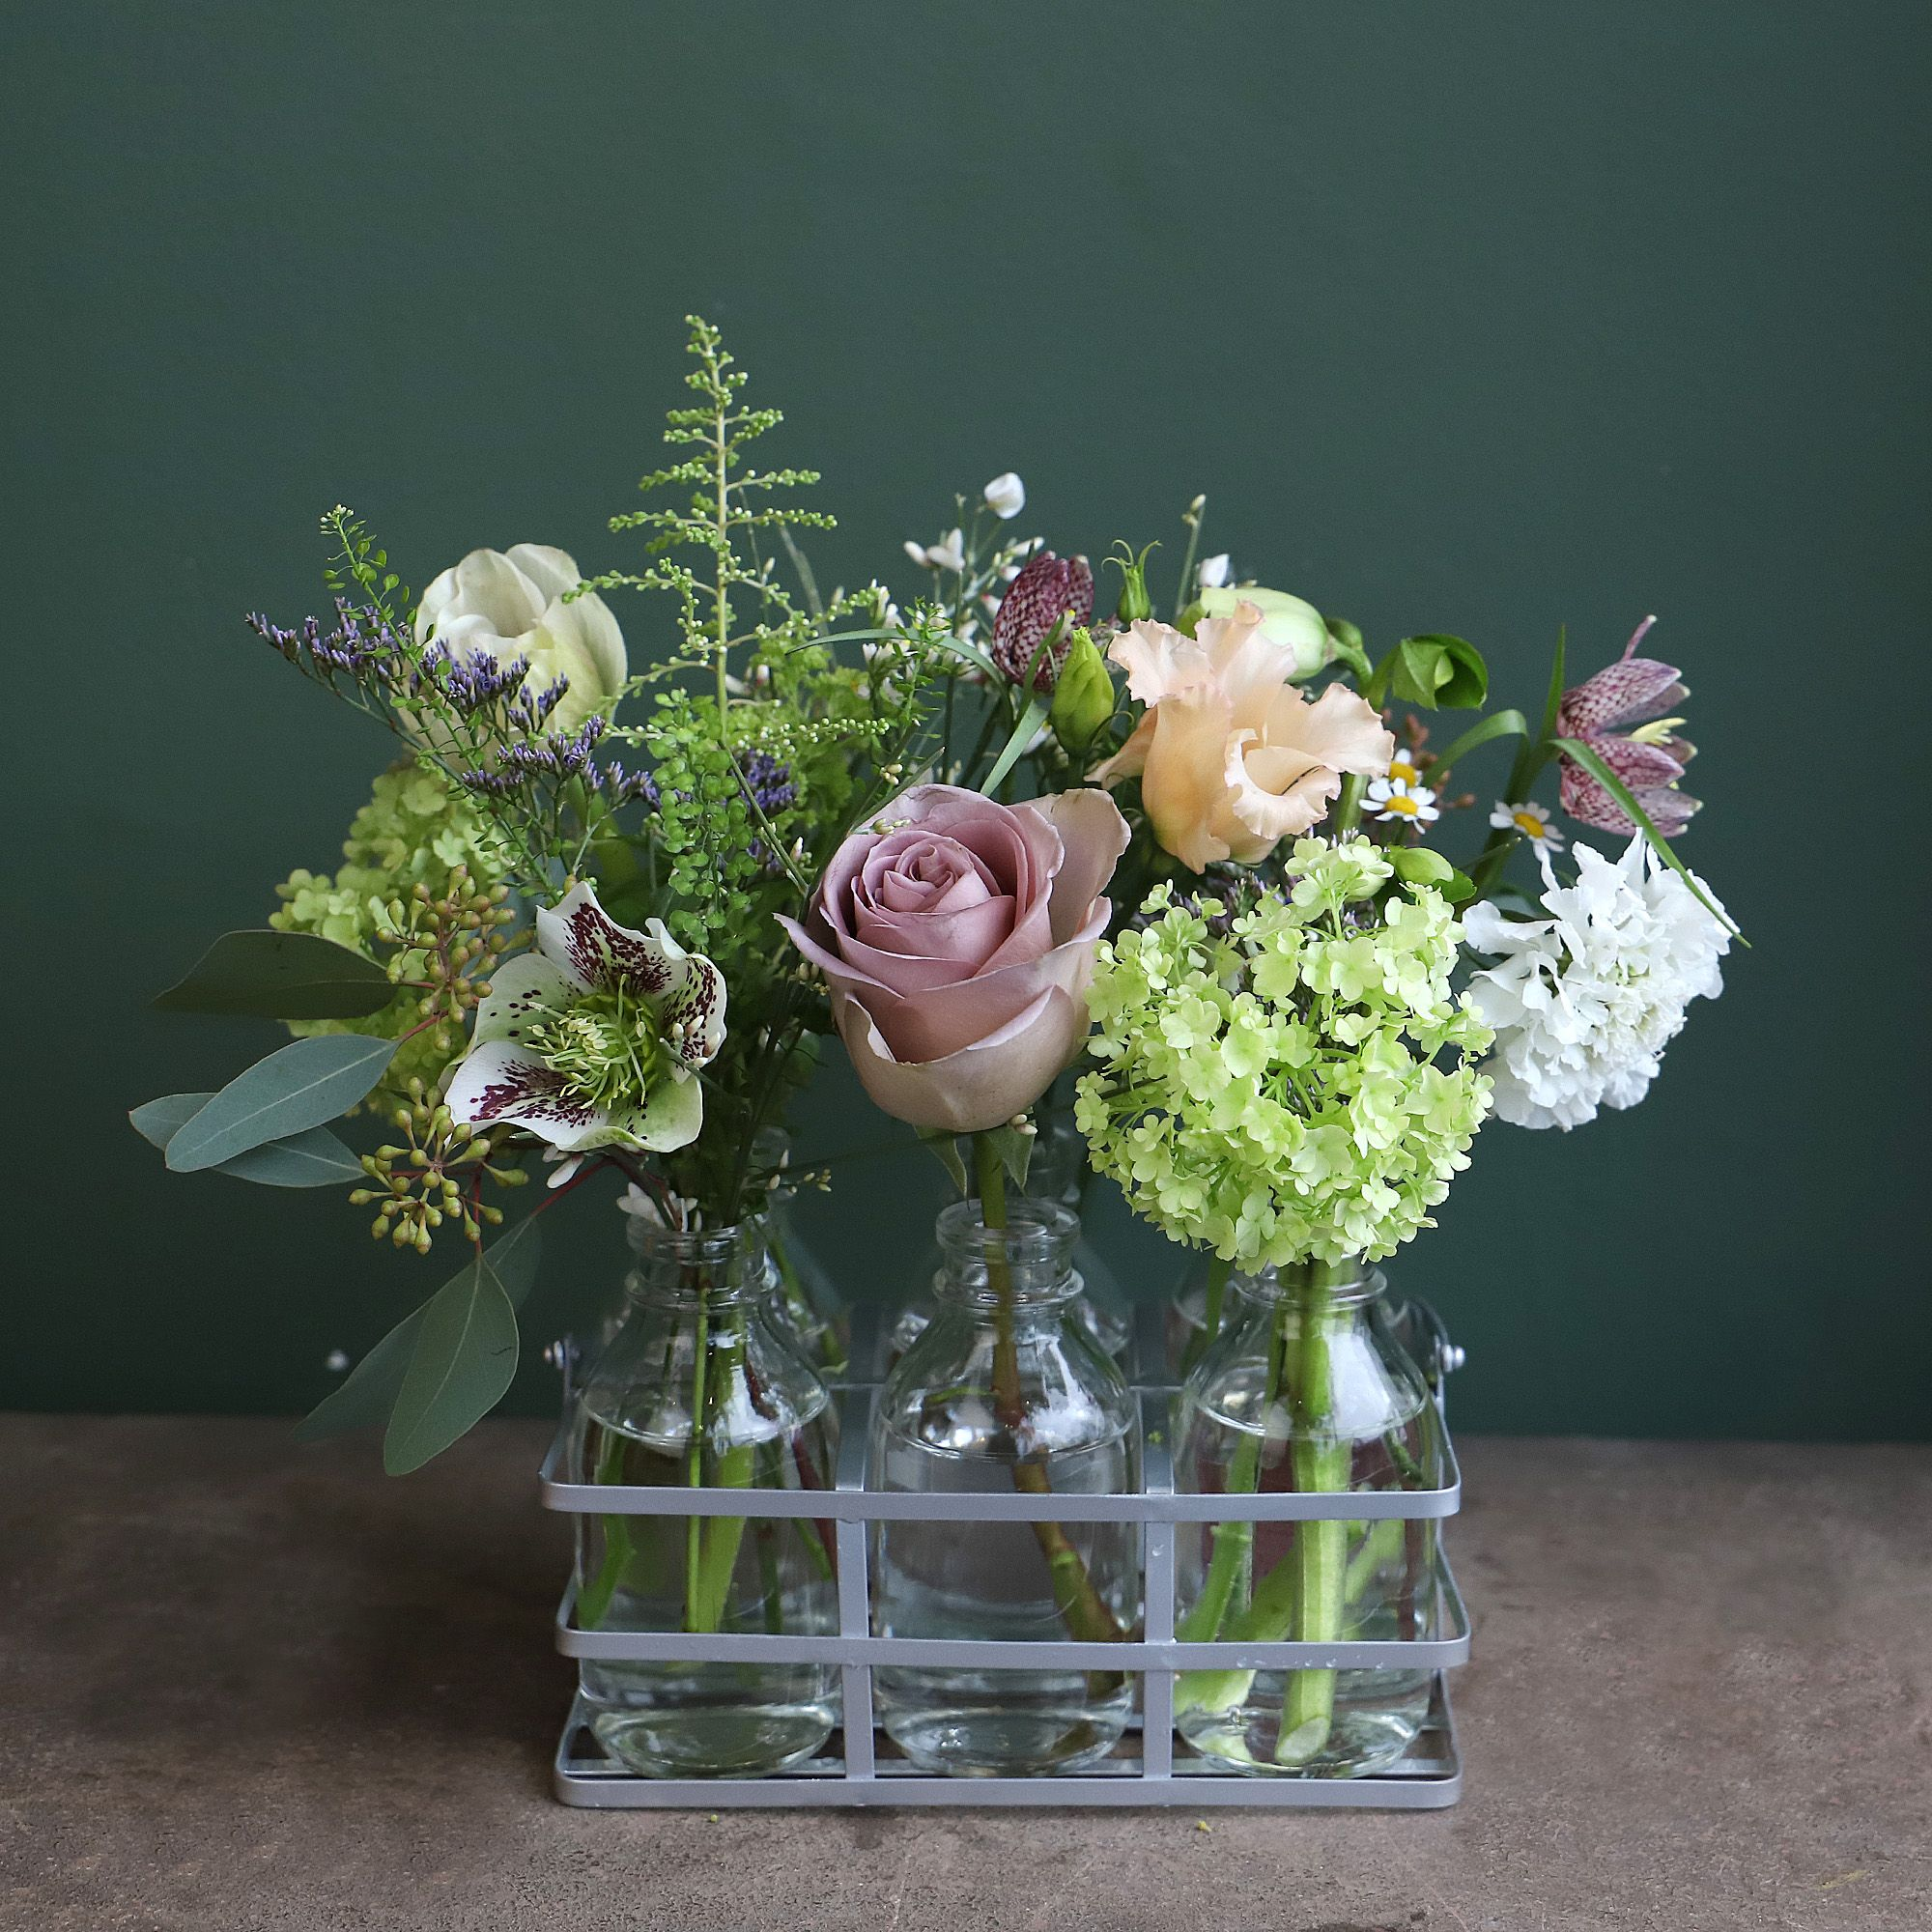 Wild crate of flowers